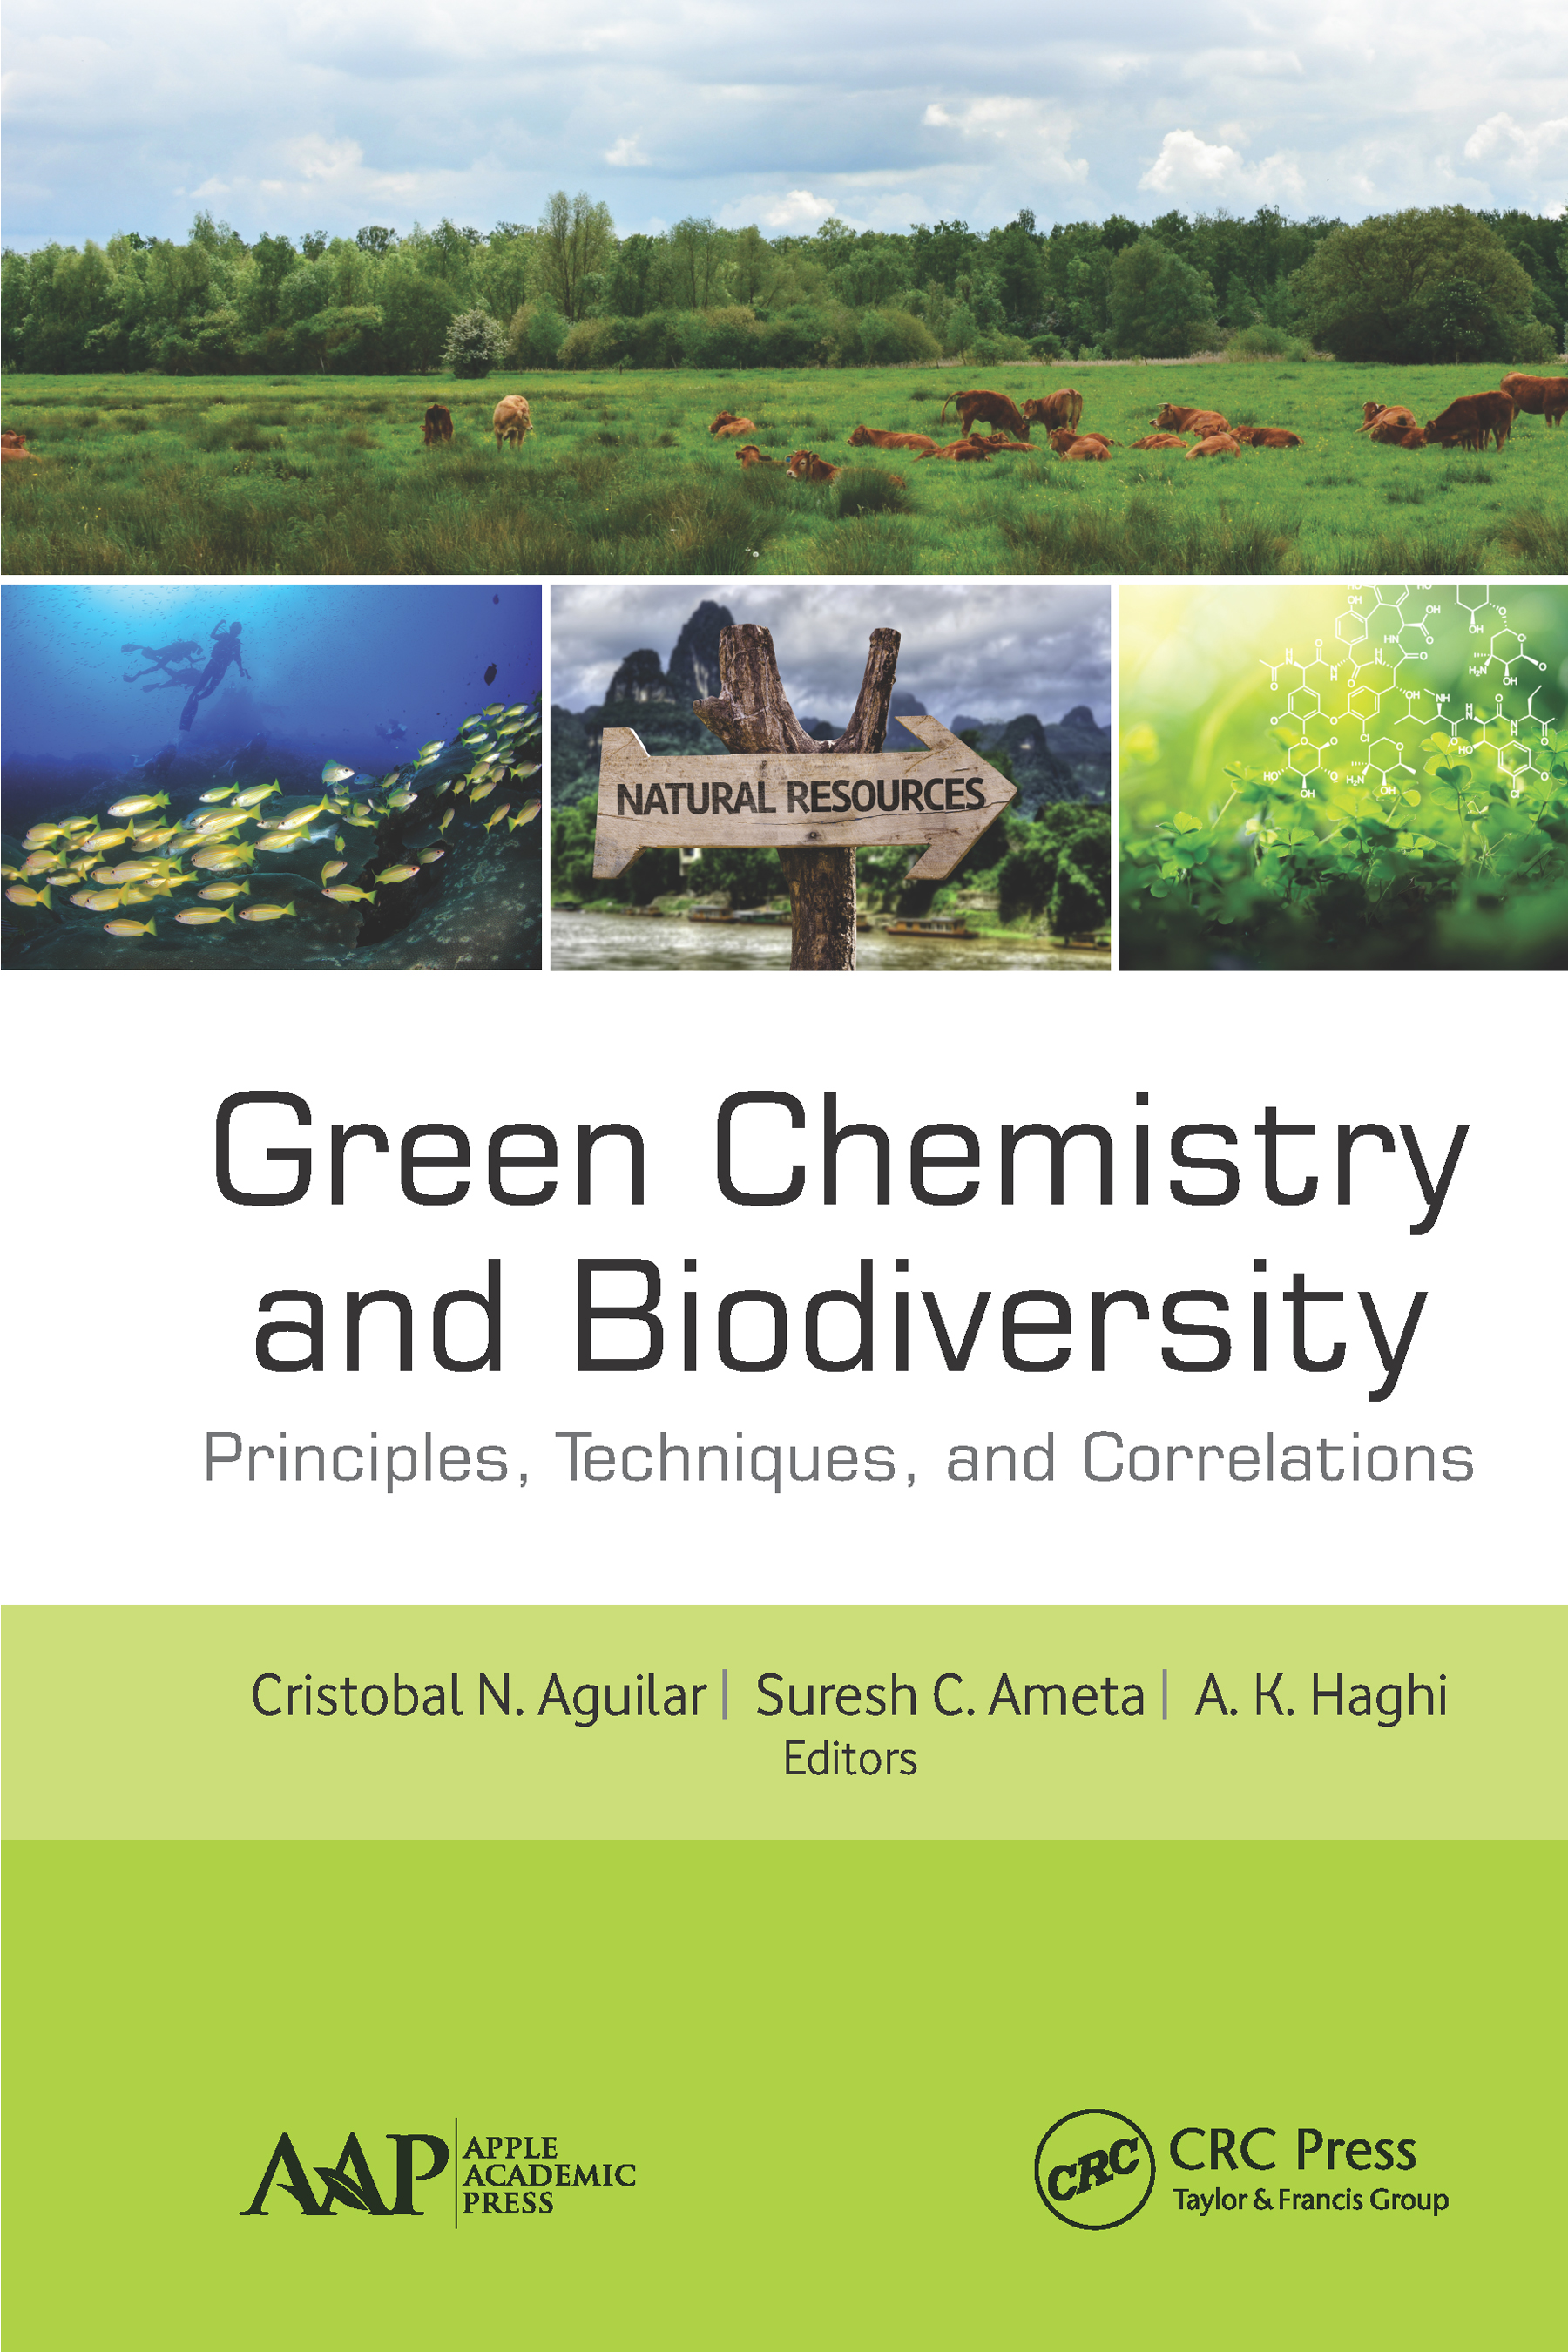 Green Chemistry and Biodiversity: Principles, Techniques, and Correlations book cover